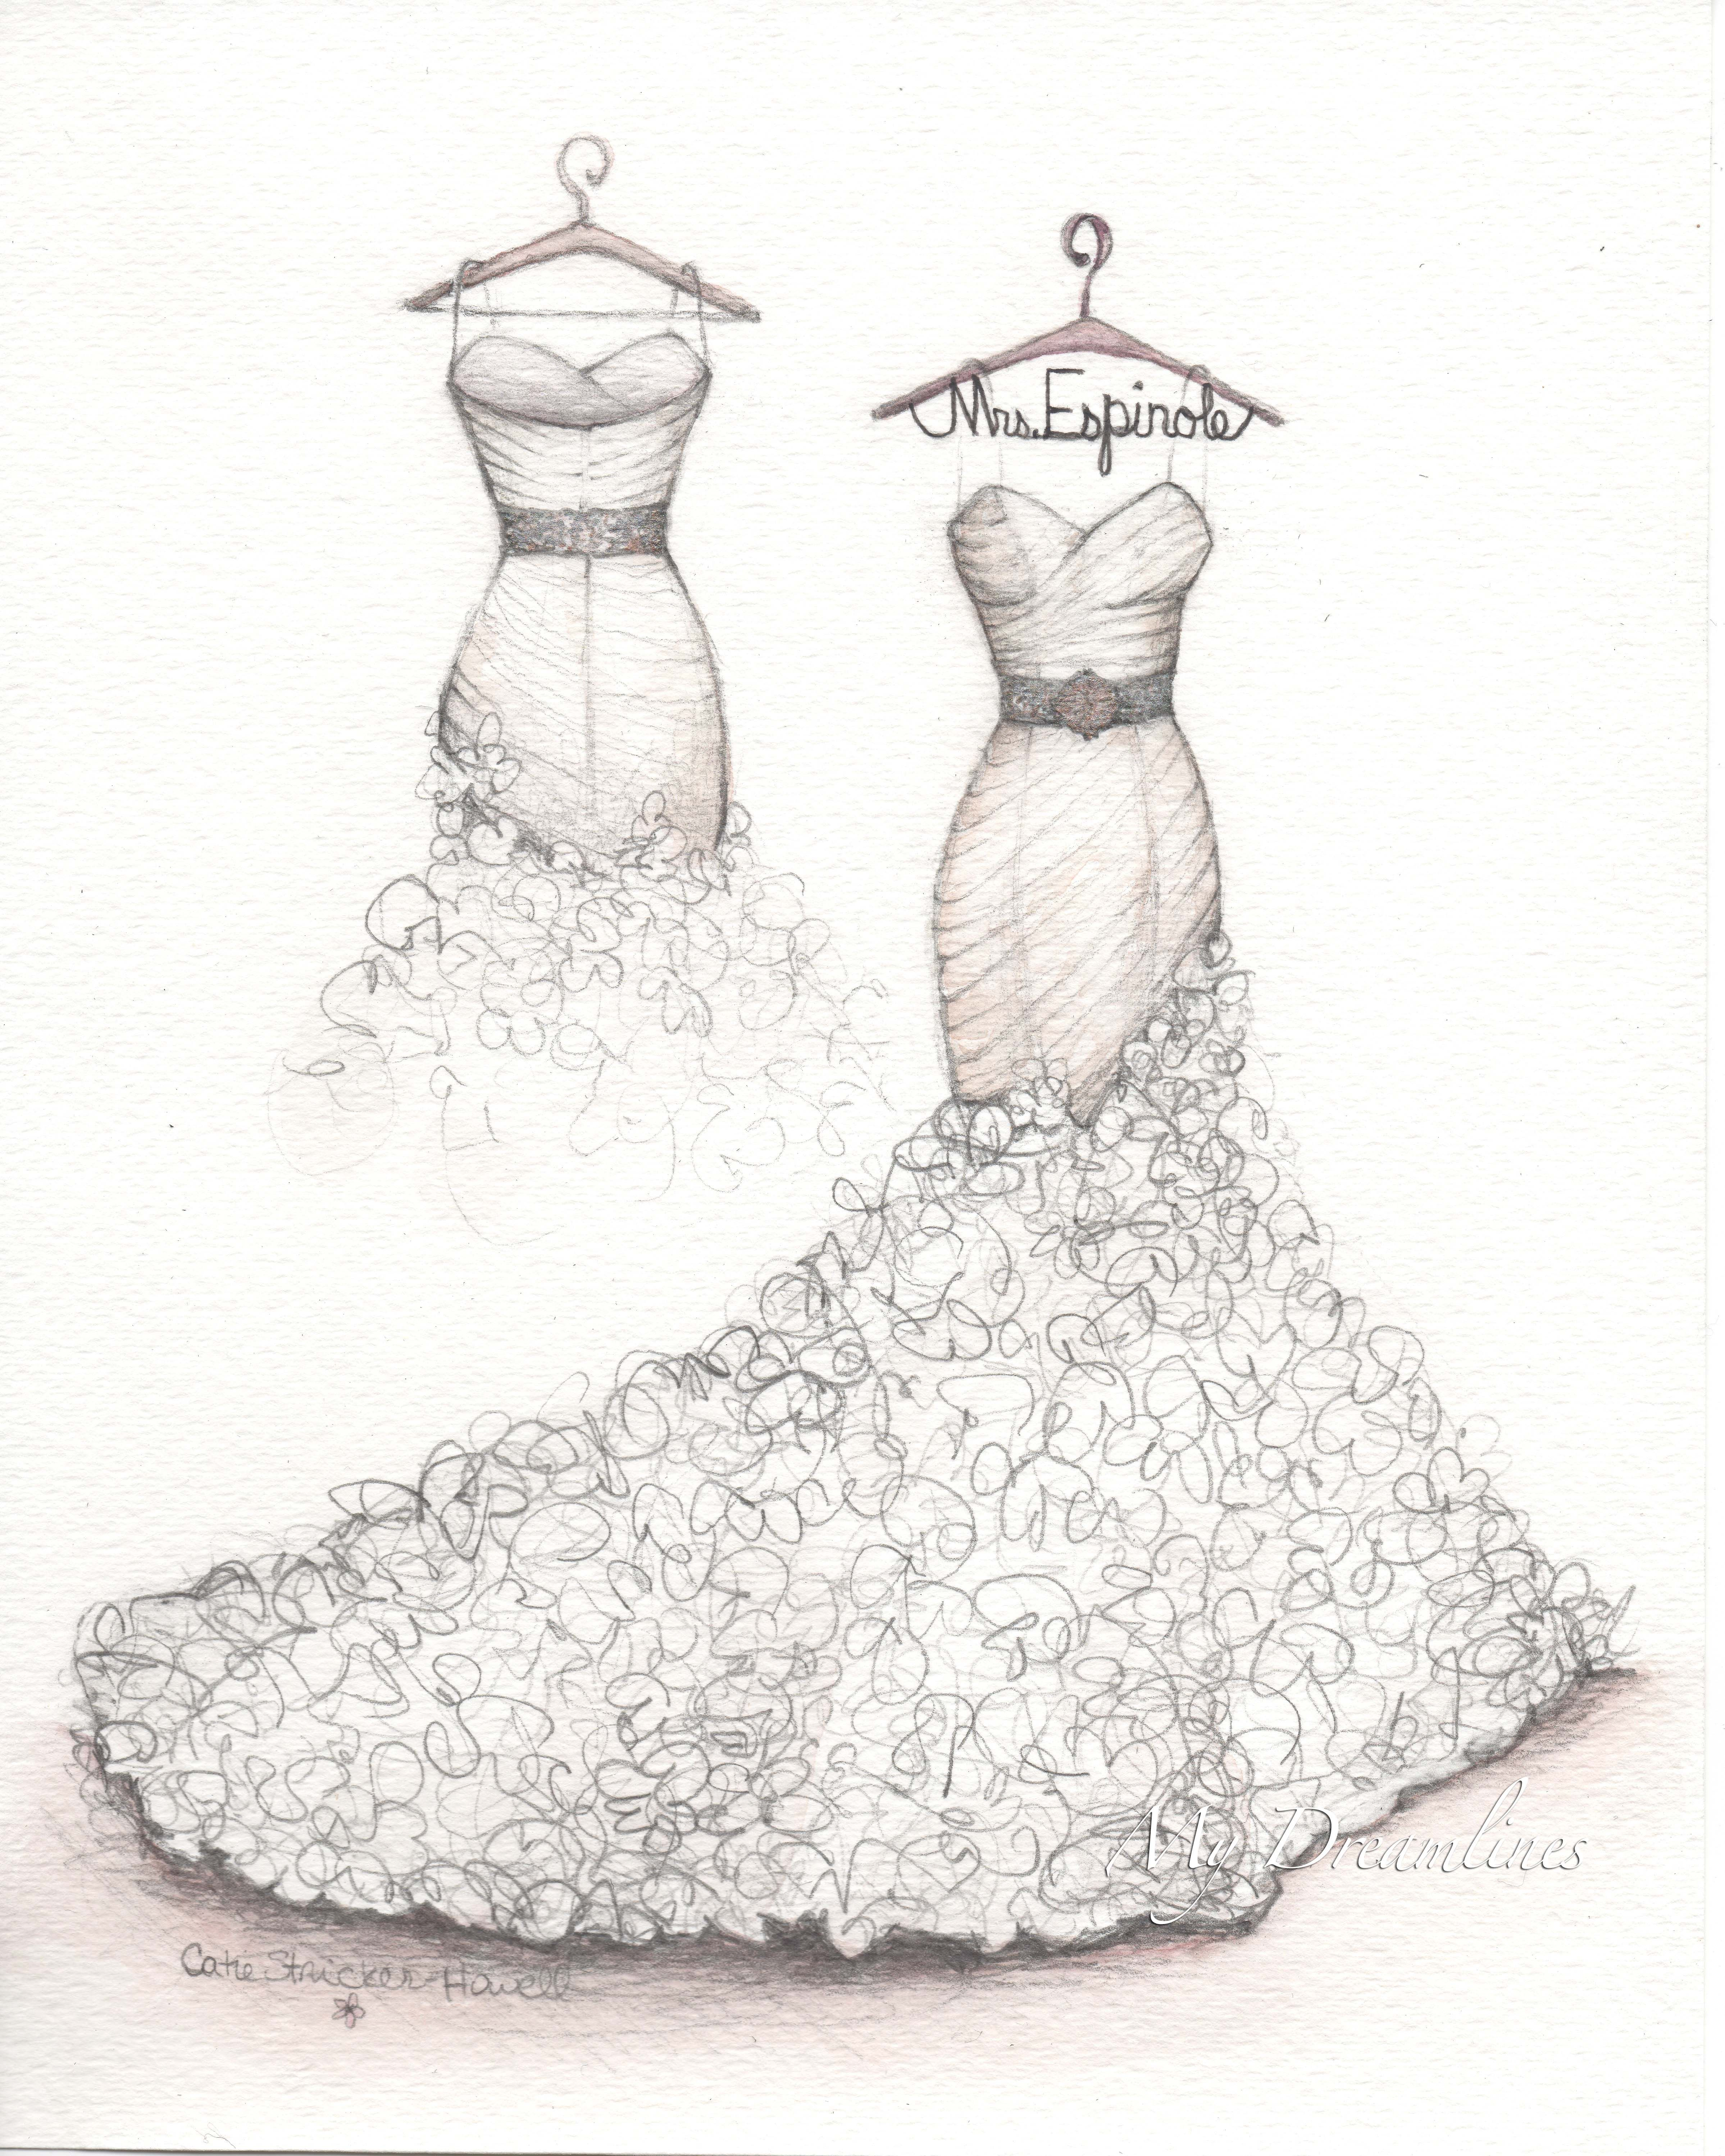 Wedding Day Gift Or 1st Anniversary Either Can Win Her Heart With A Sketch